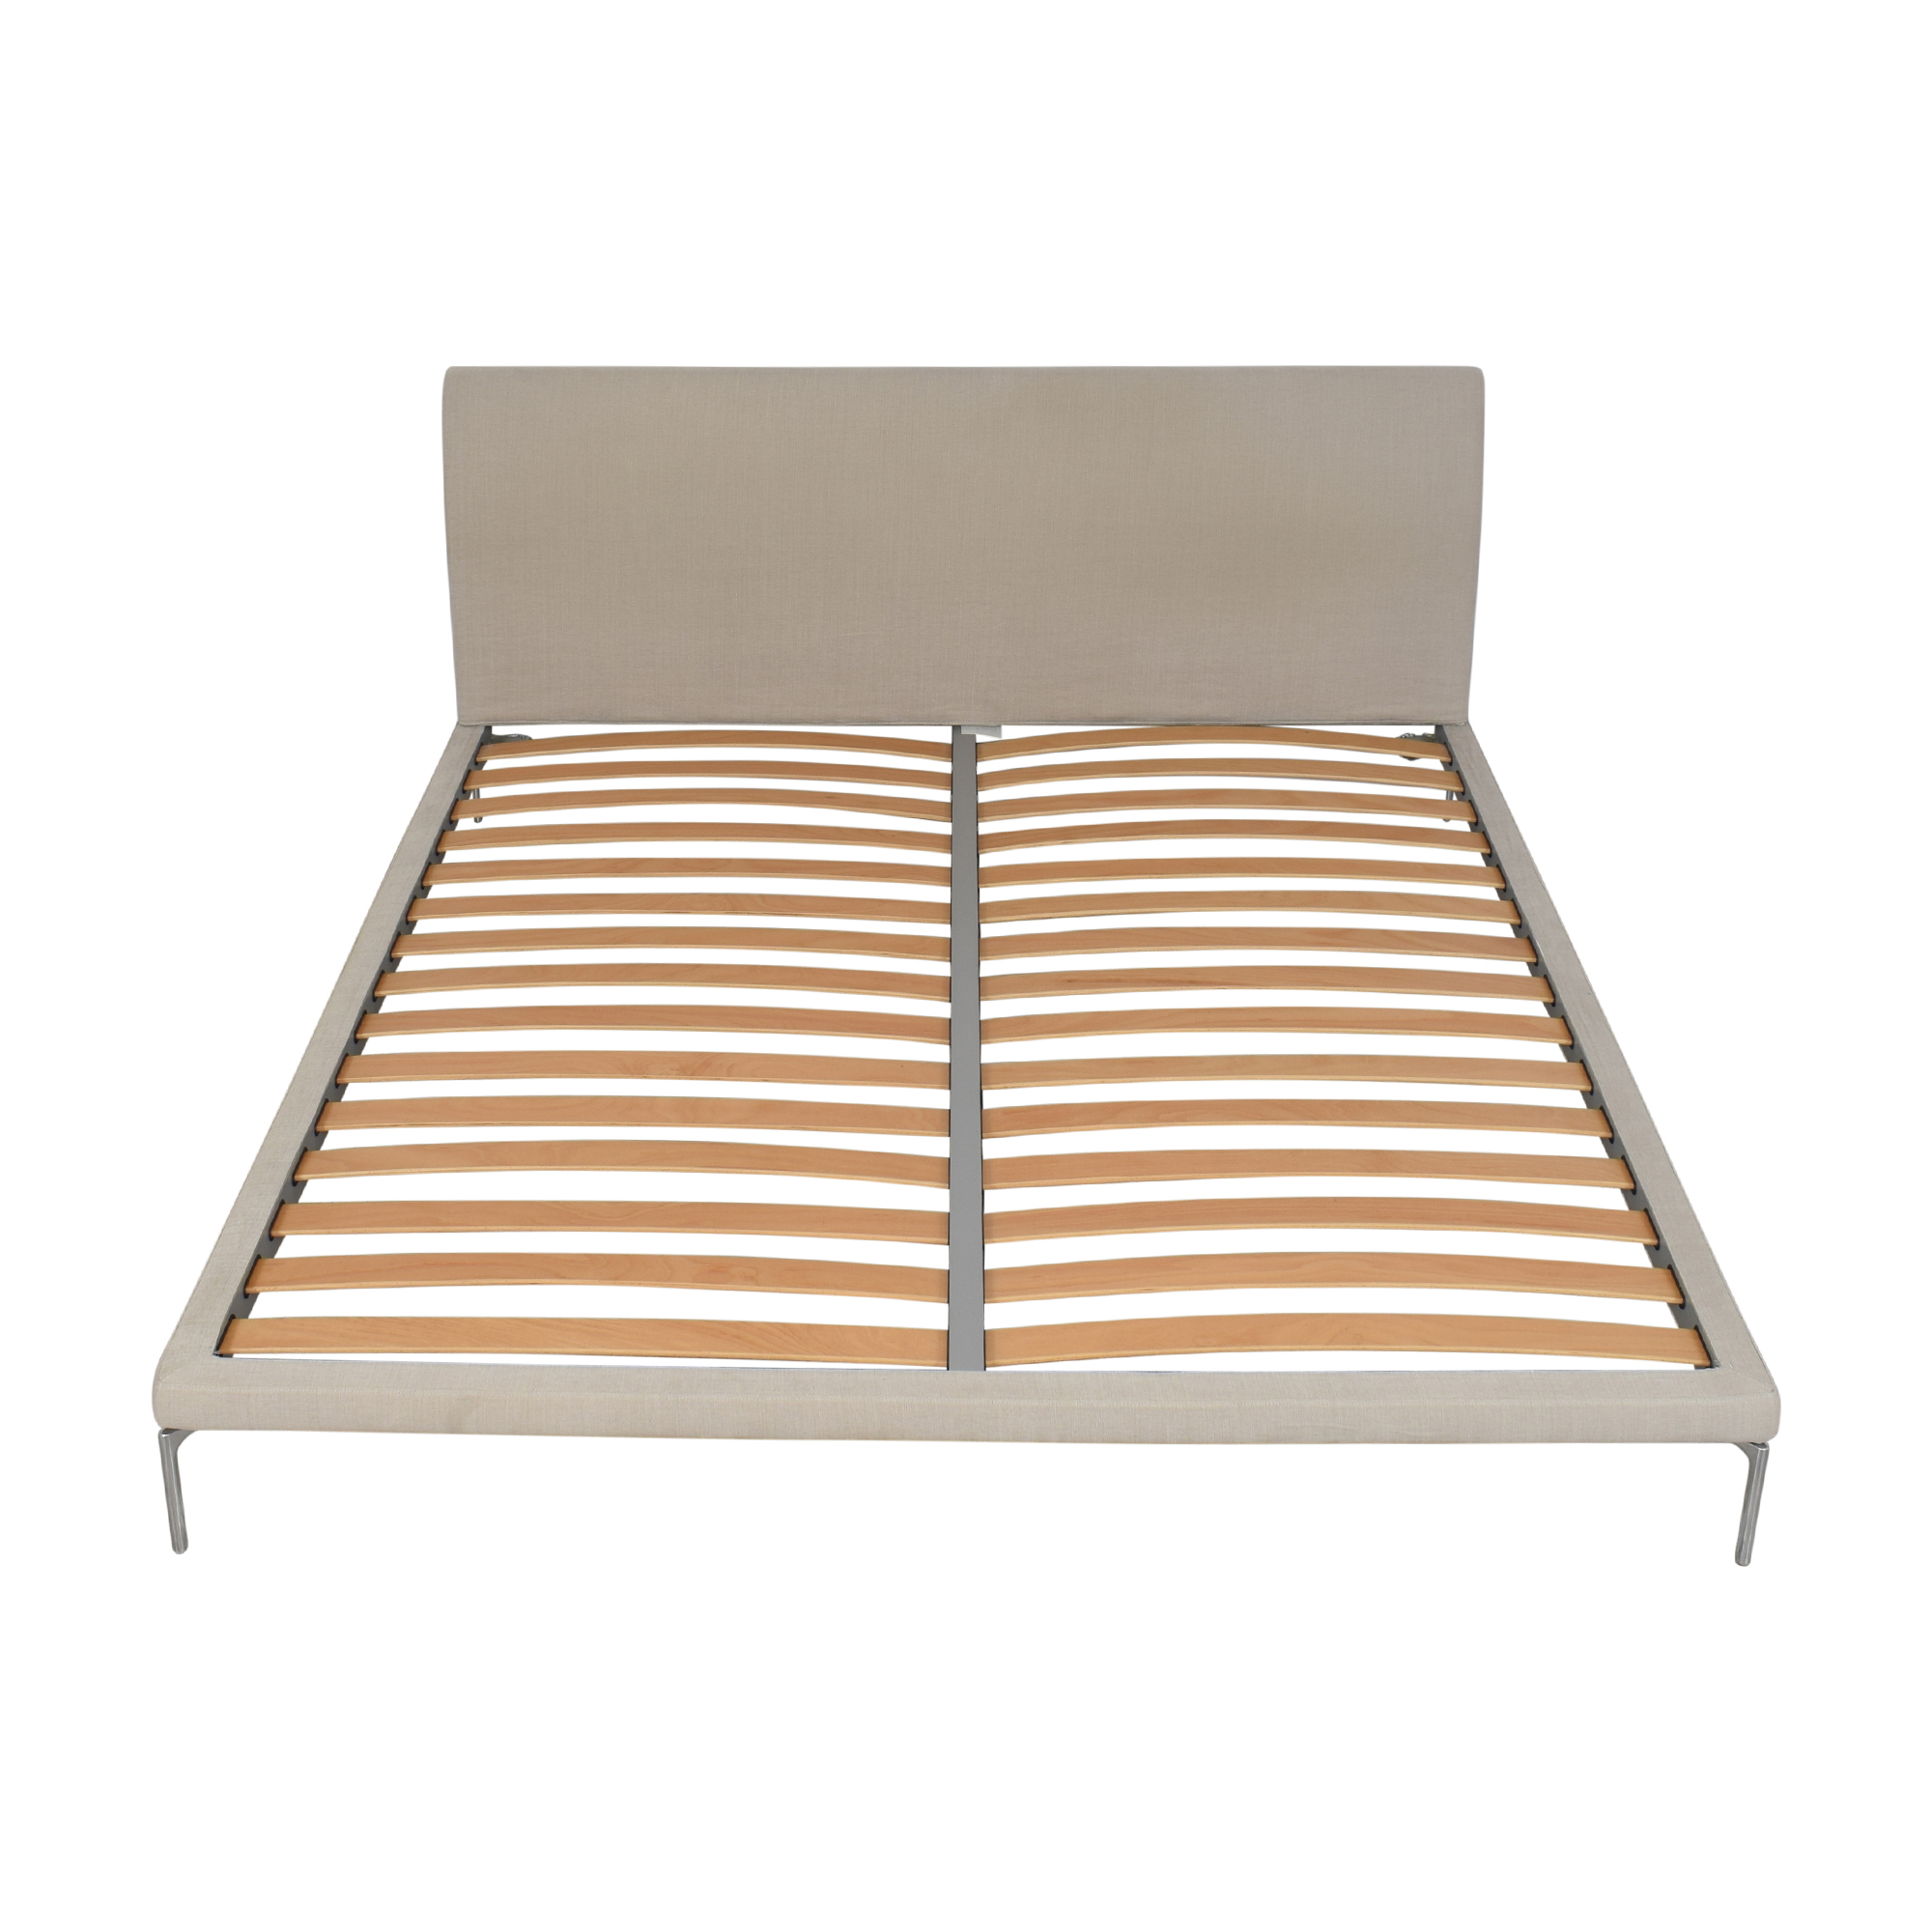 Zanotta Zanotta Telamo King Bed price